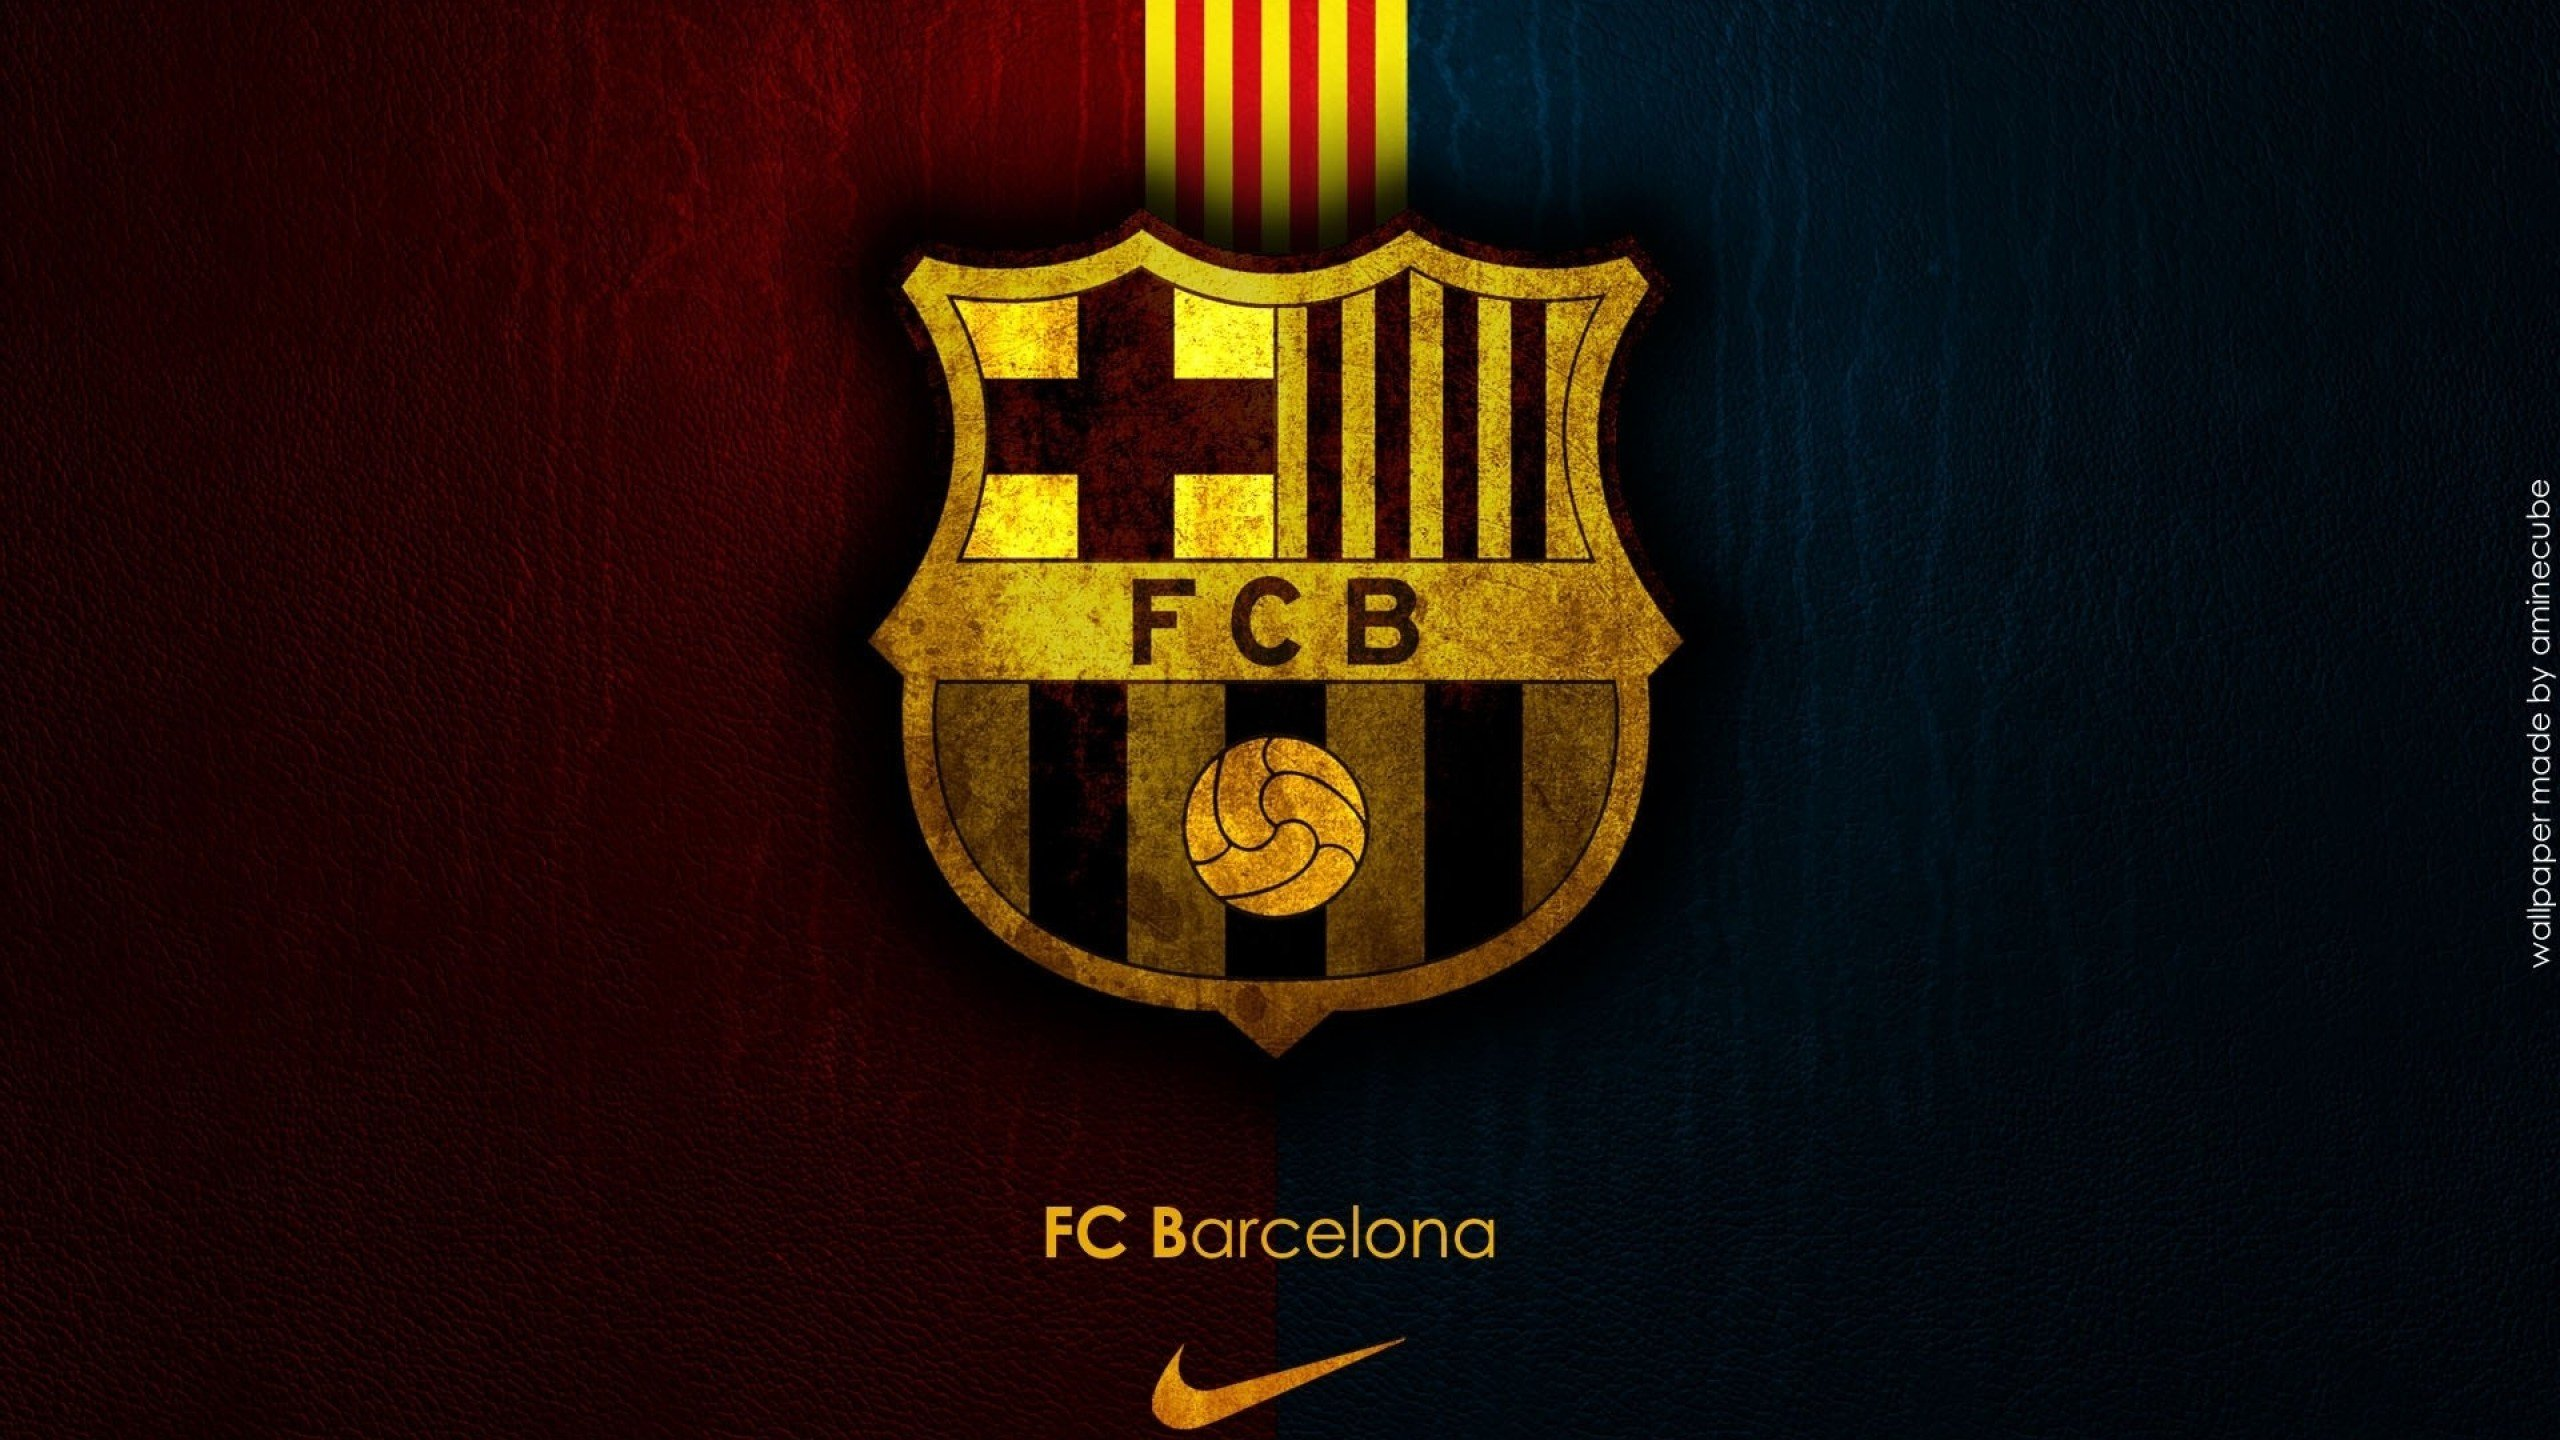 Free FC Barcelona high quality wallpaper ID:137868 for hd 2560x1440 desktop